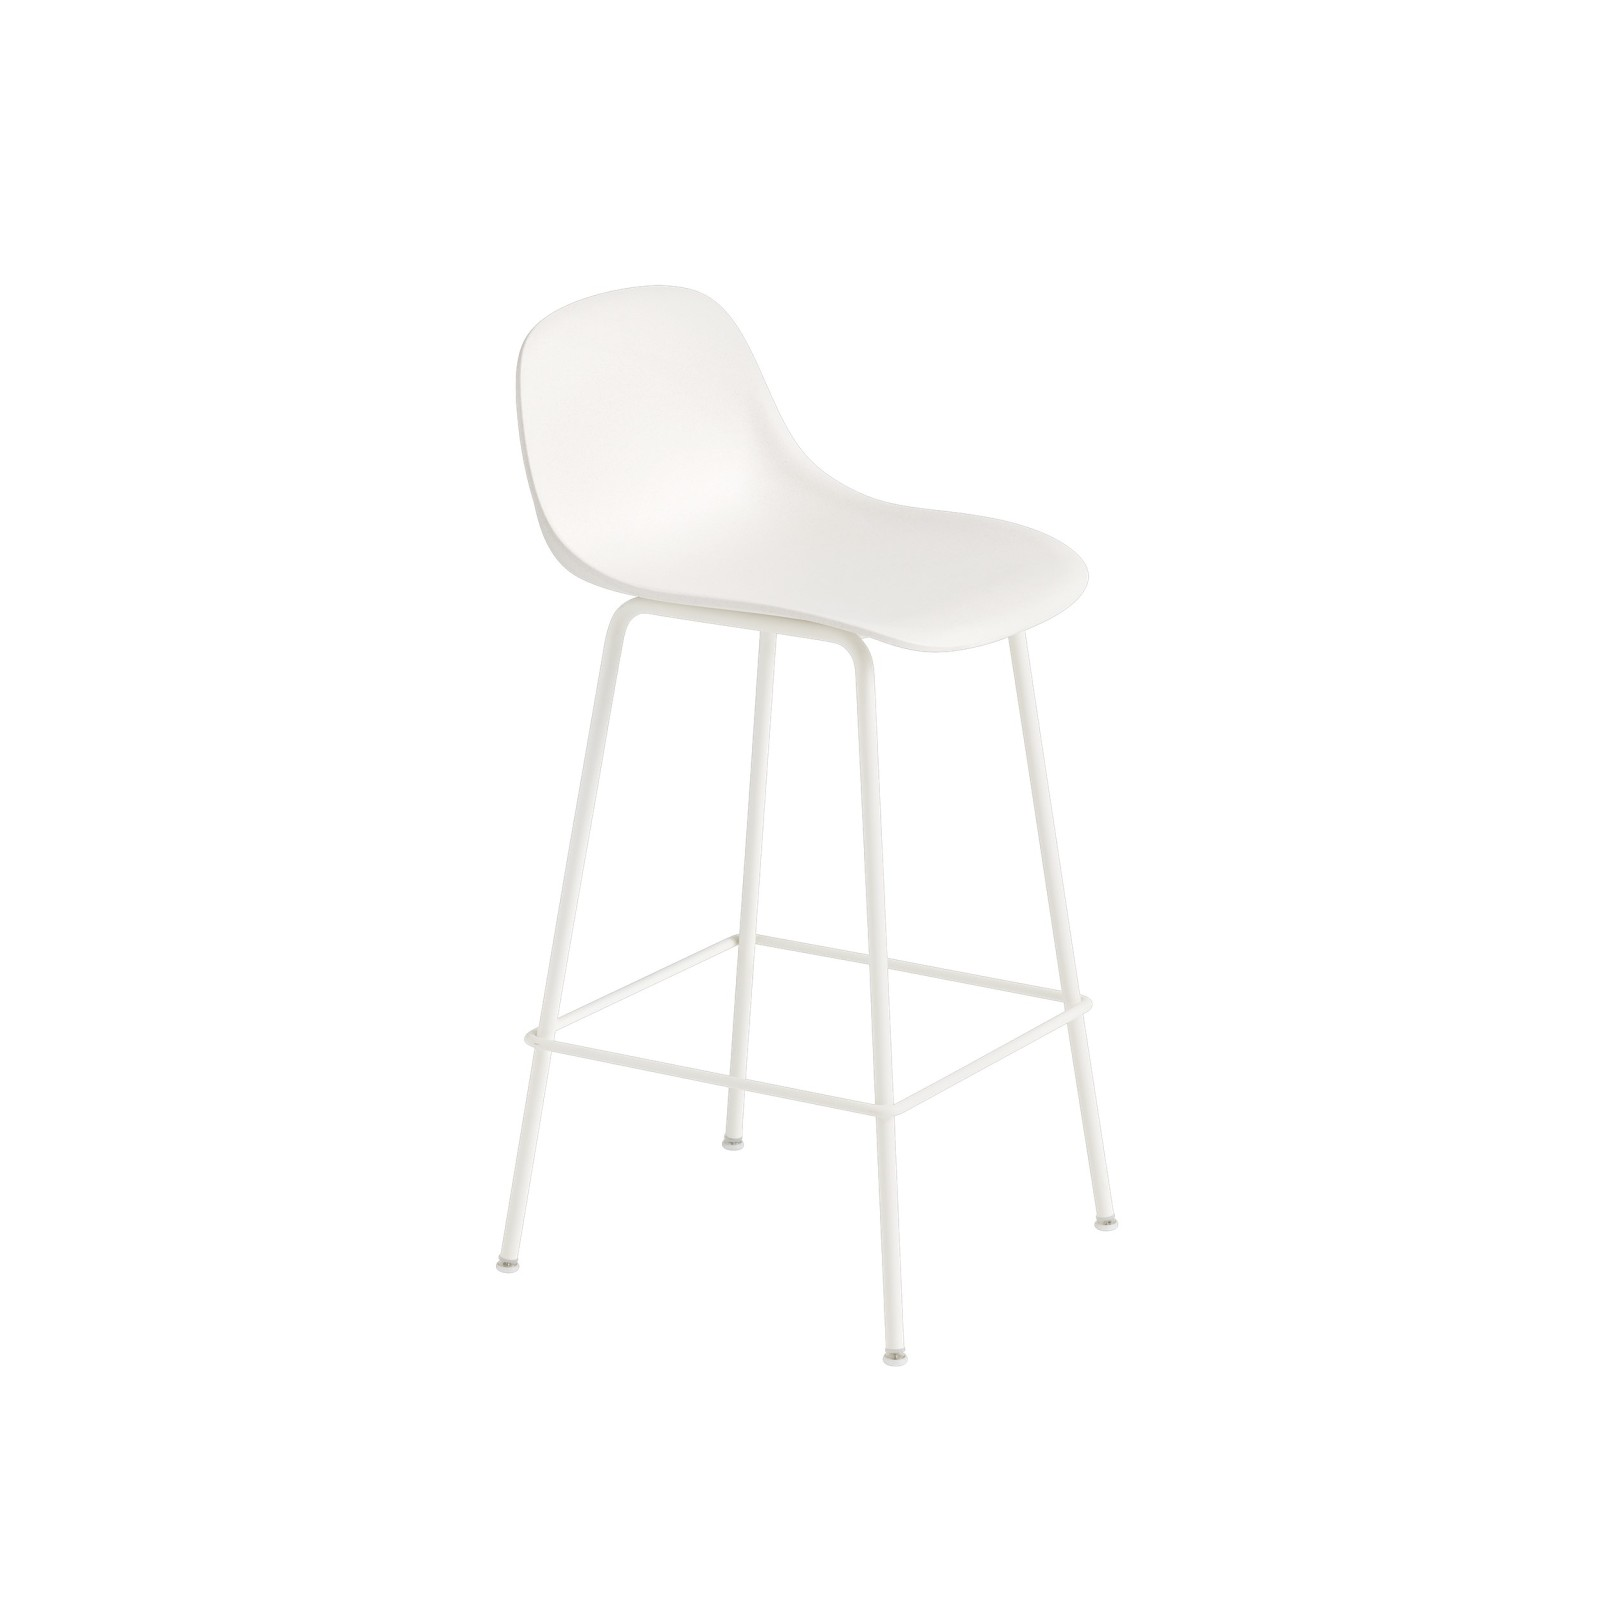 Fiber Bar Stool With Backrest Tube Base Natural White/White, 65